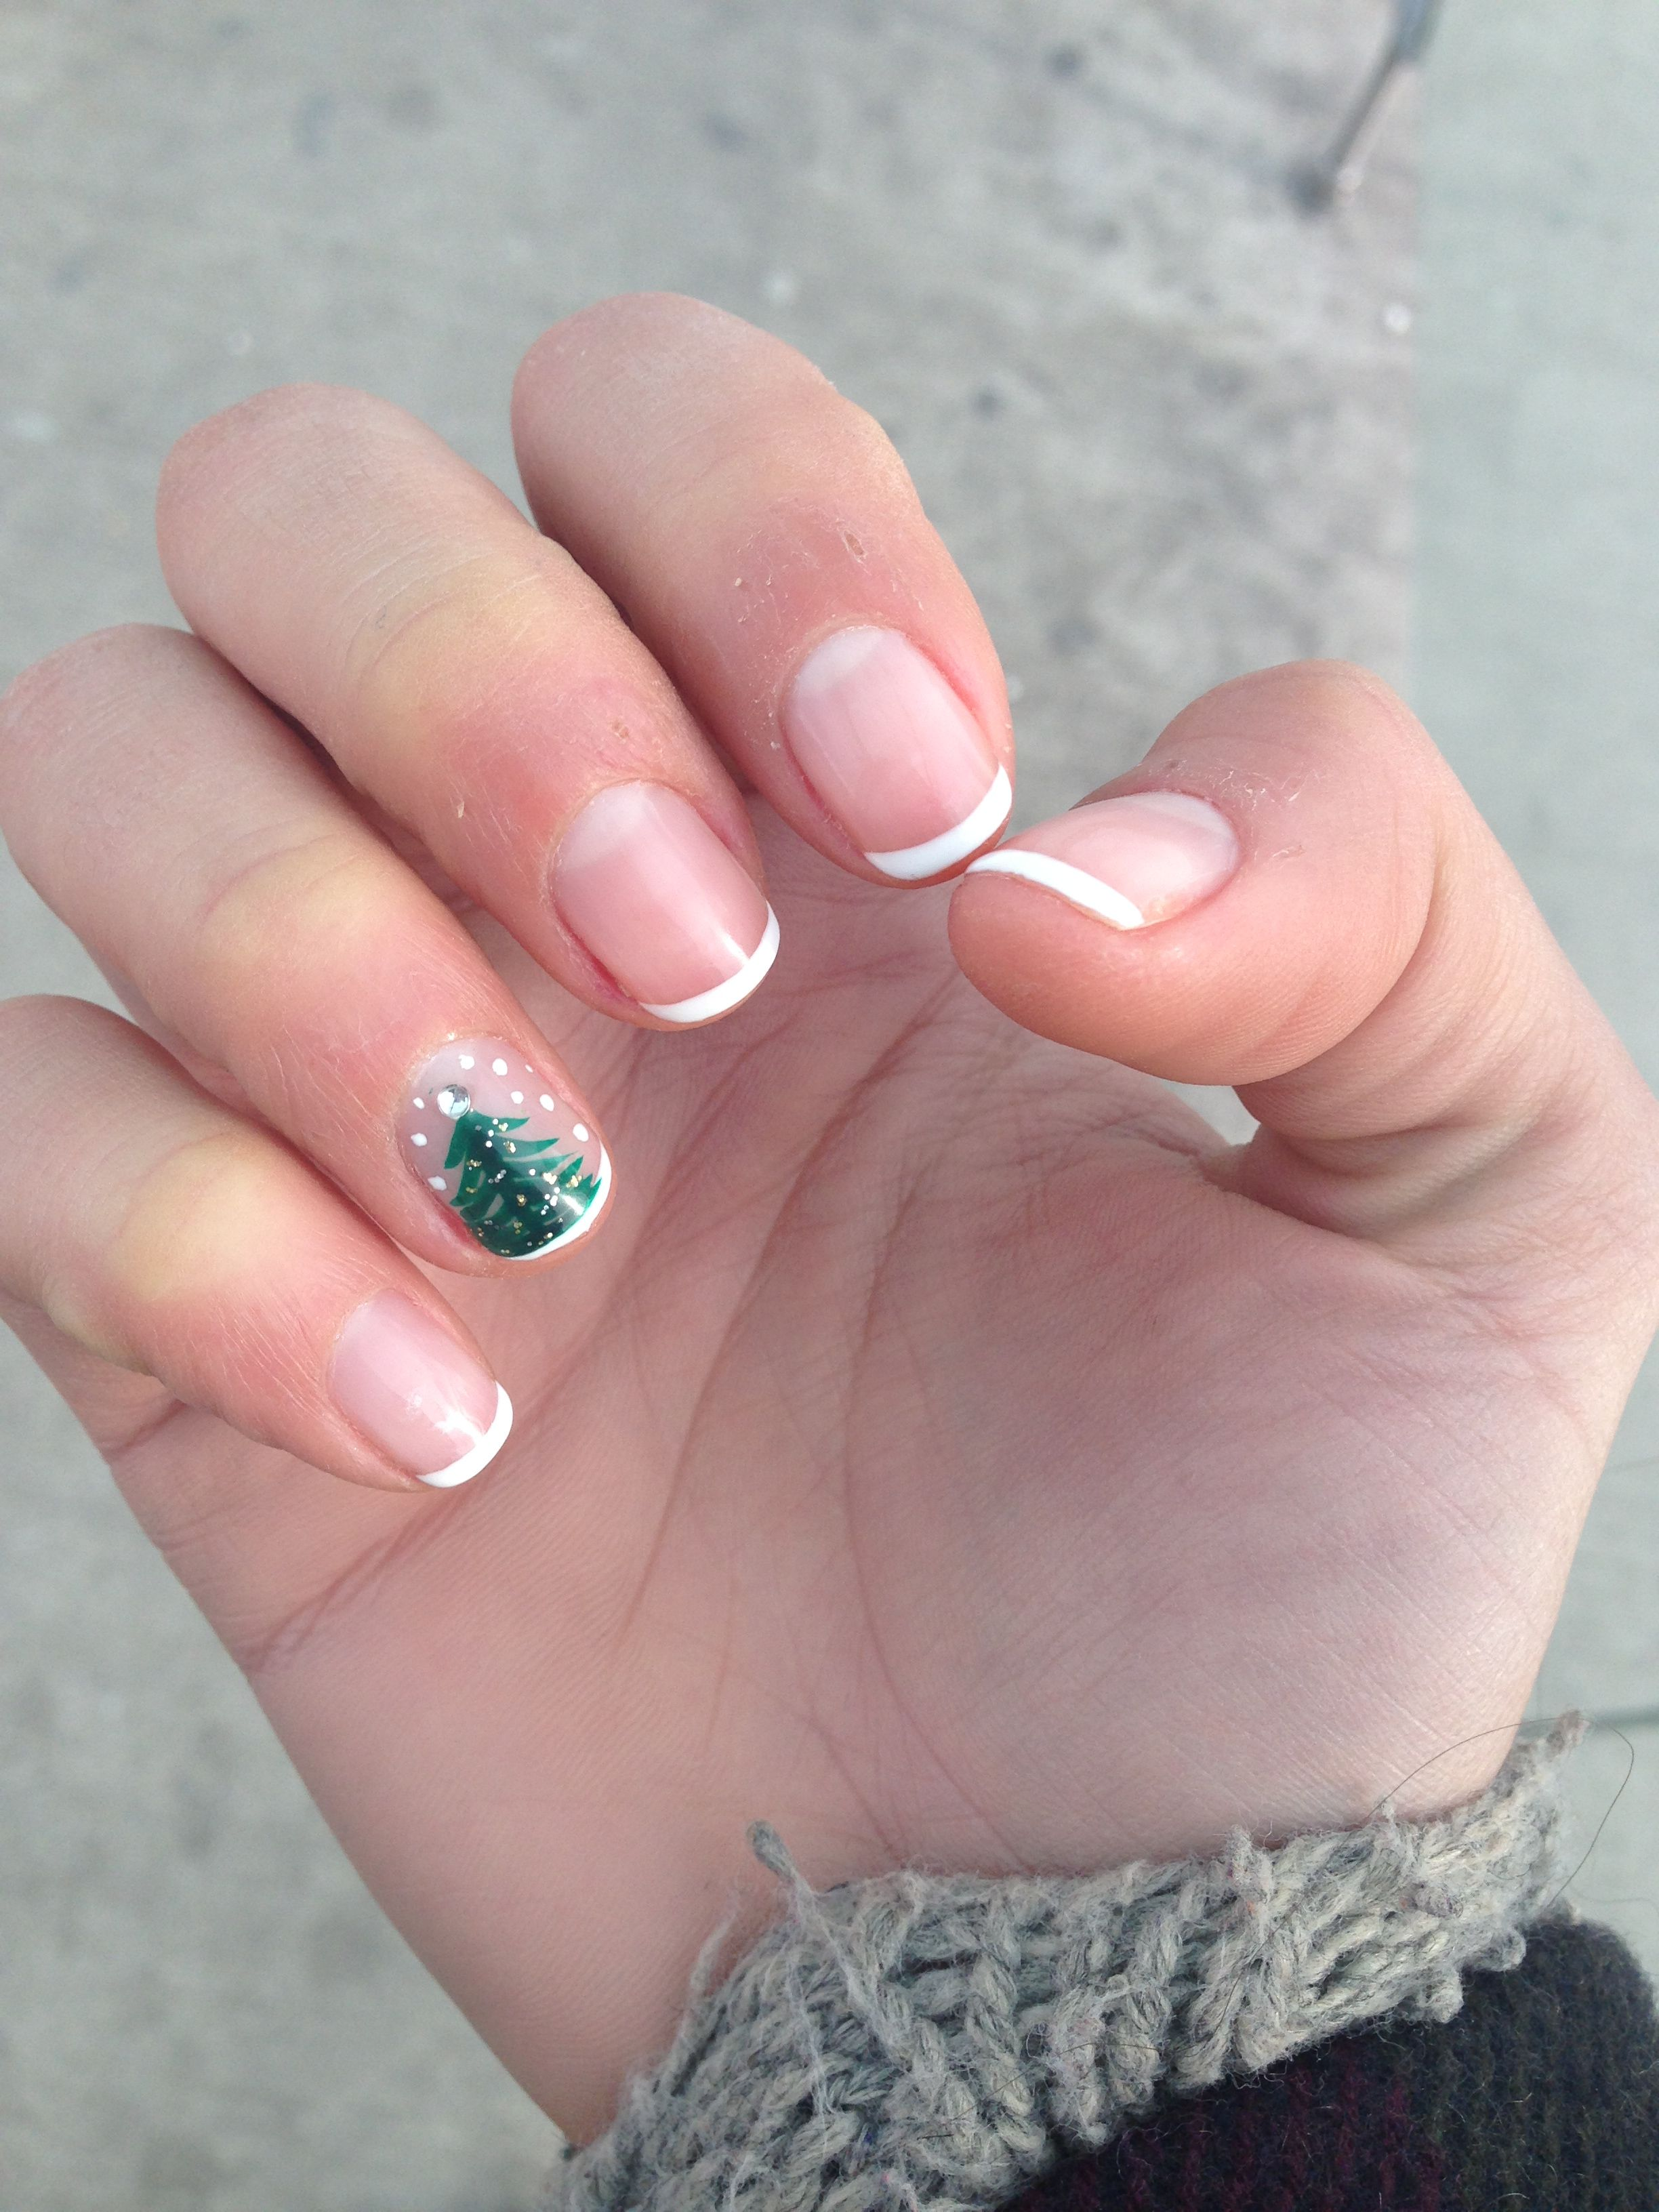 Shellac French Manicure With Holiday Design Paws Claws